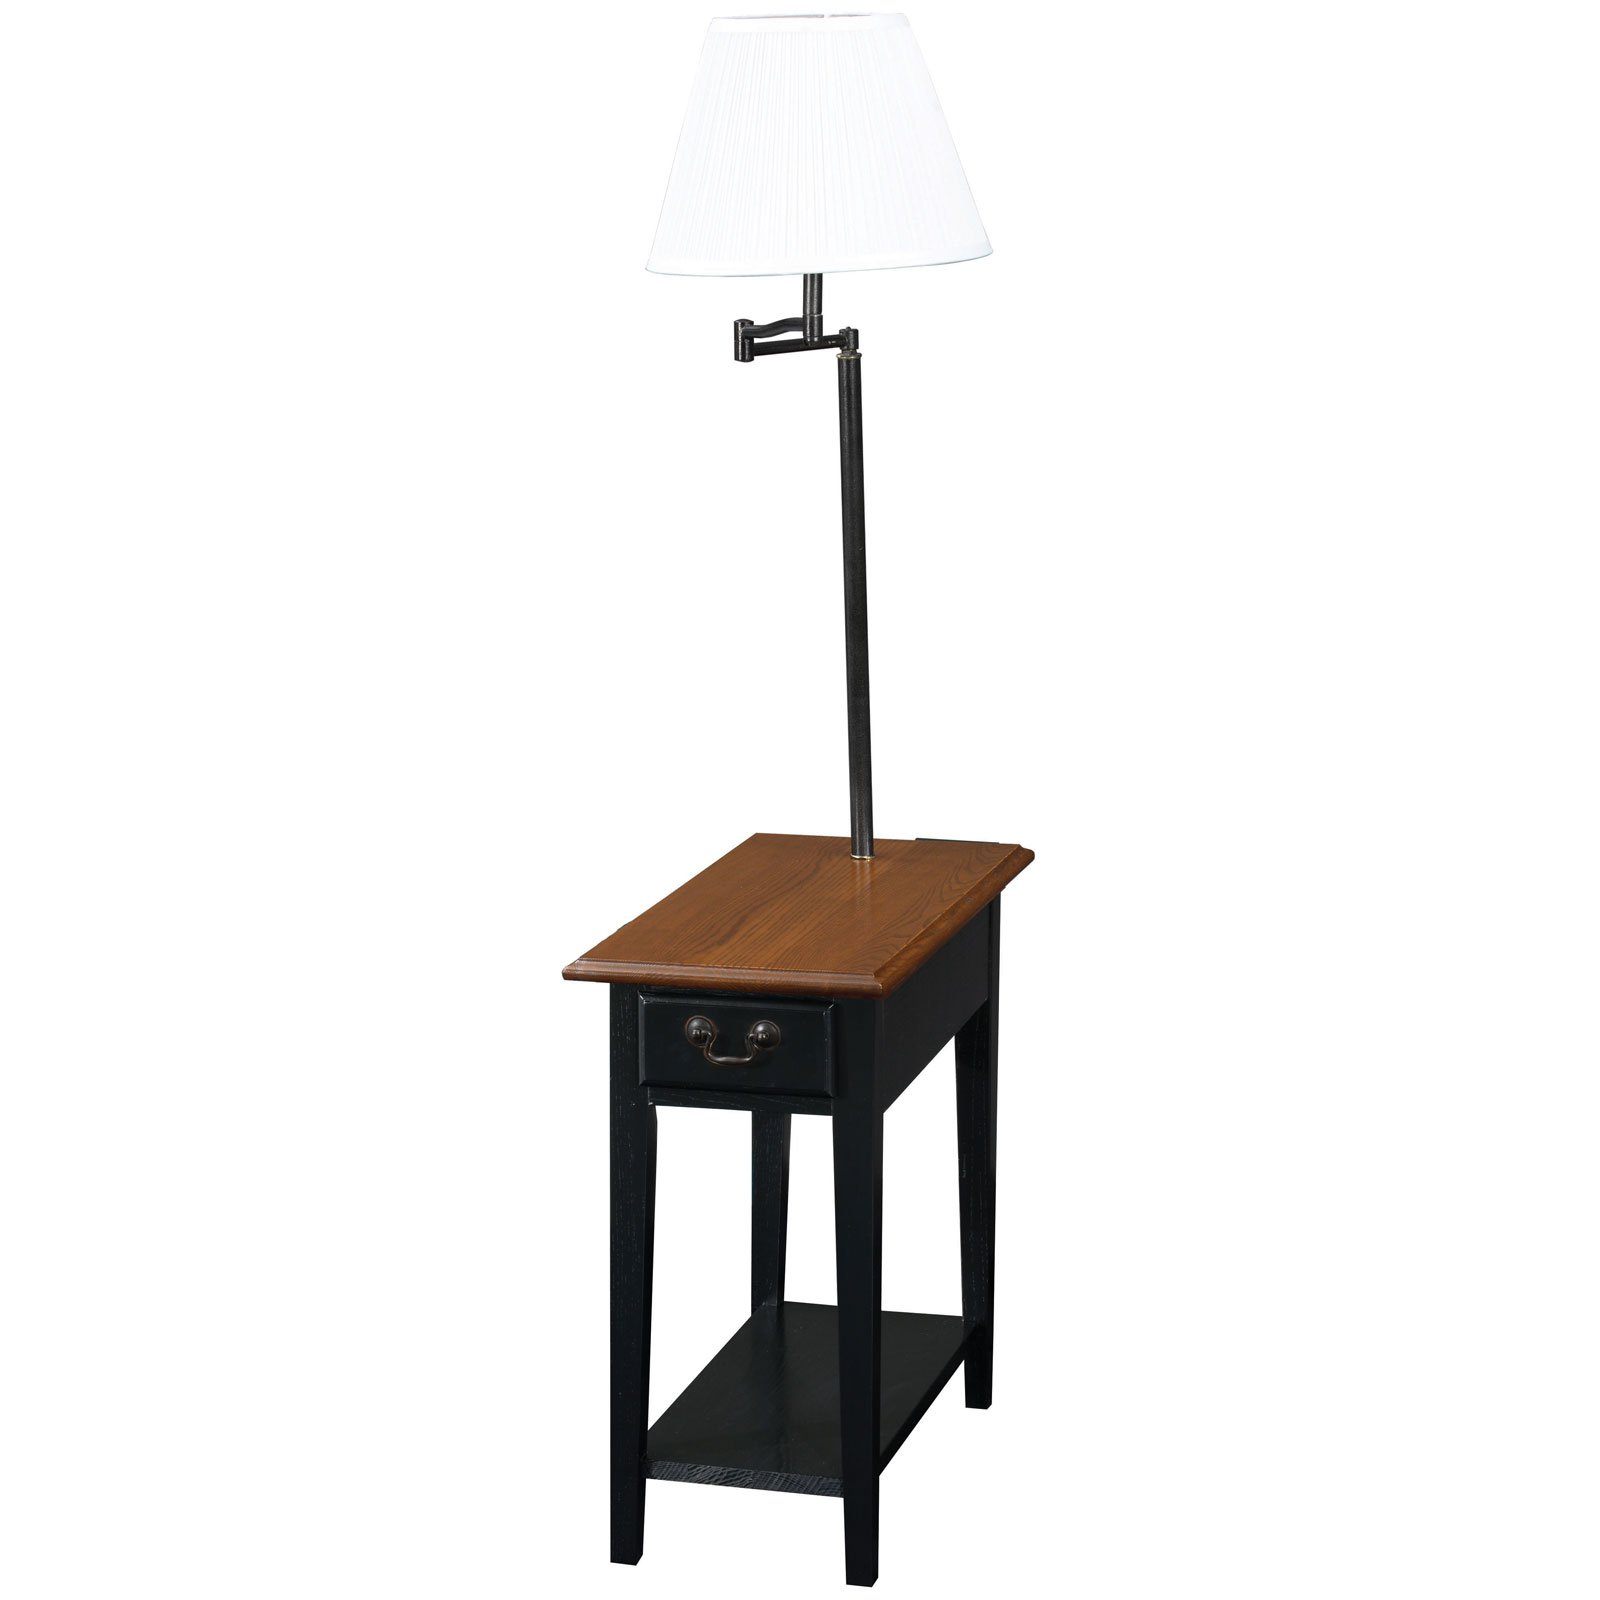 Leick Home Chairside End Table With Swing Arm Lamp In Black End Tables With Drawers Oak End Tables End Table With Lamp End table with lamp built in